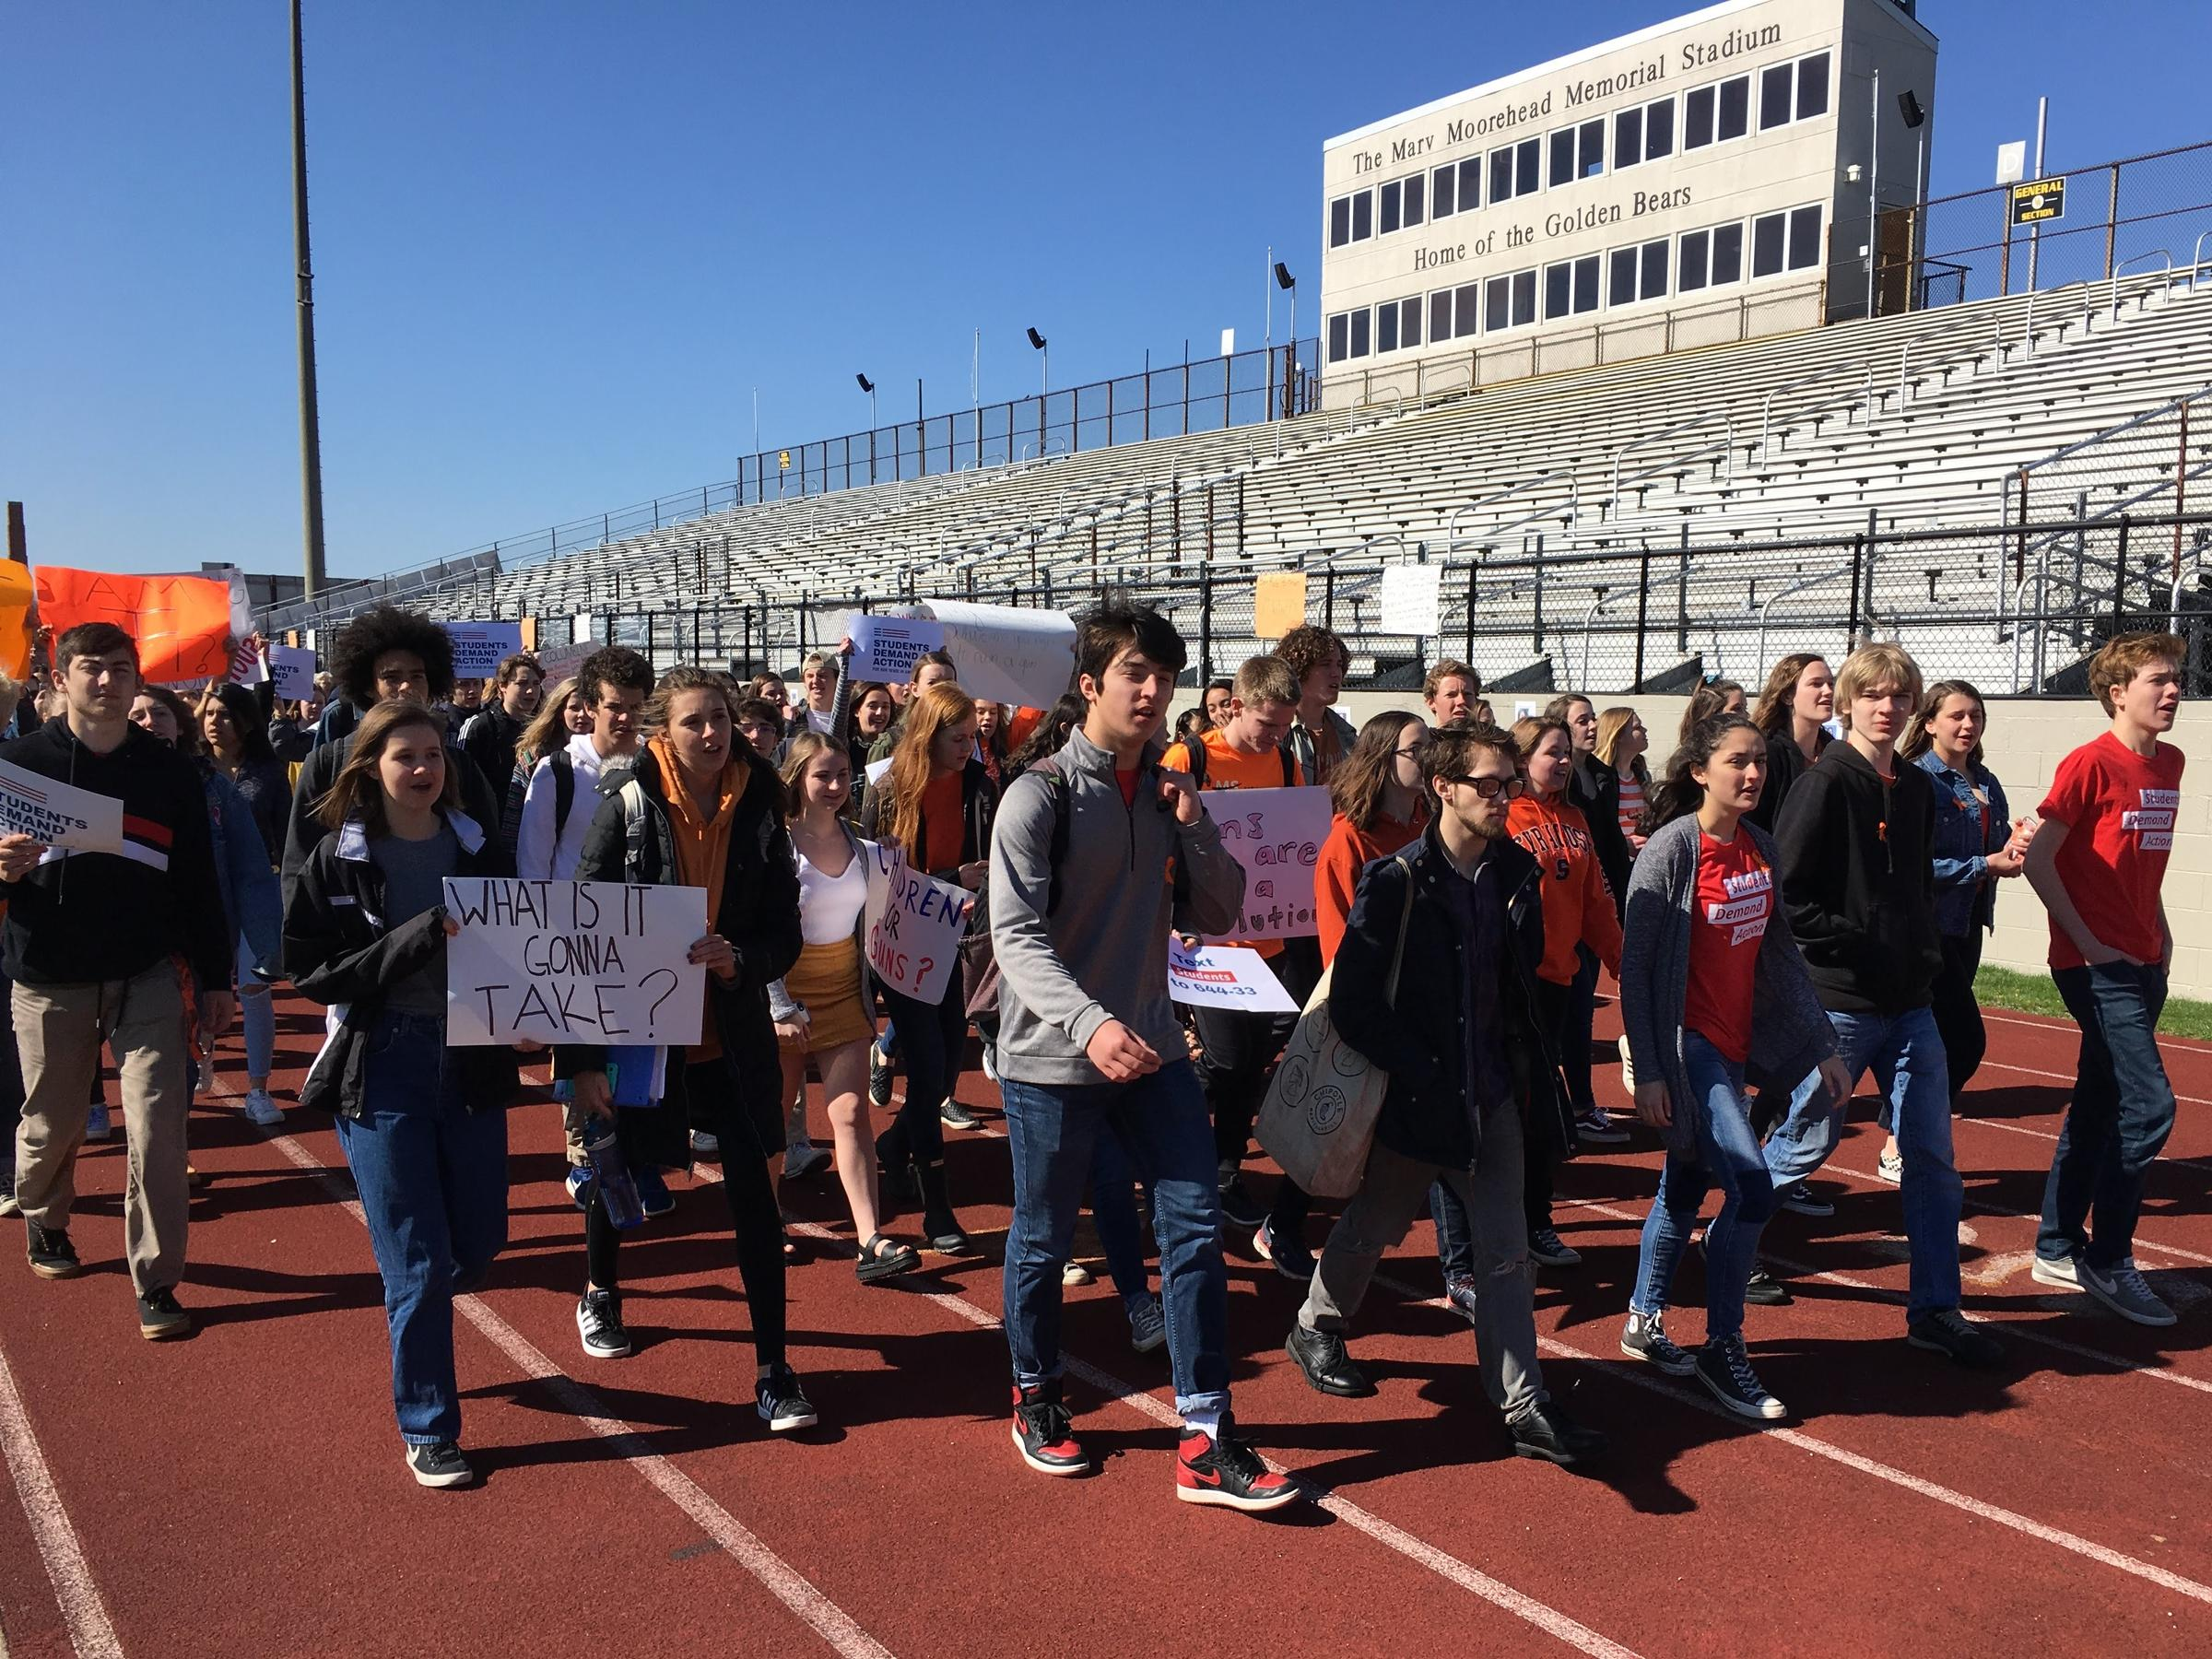 Students Walk Out Of School On Columbine Shooting's 19th Anniversary